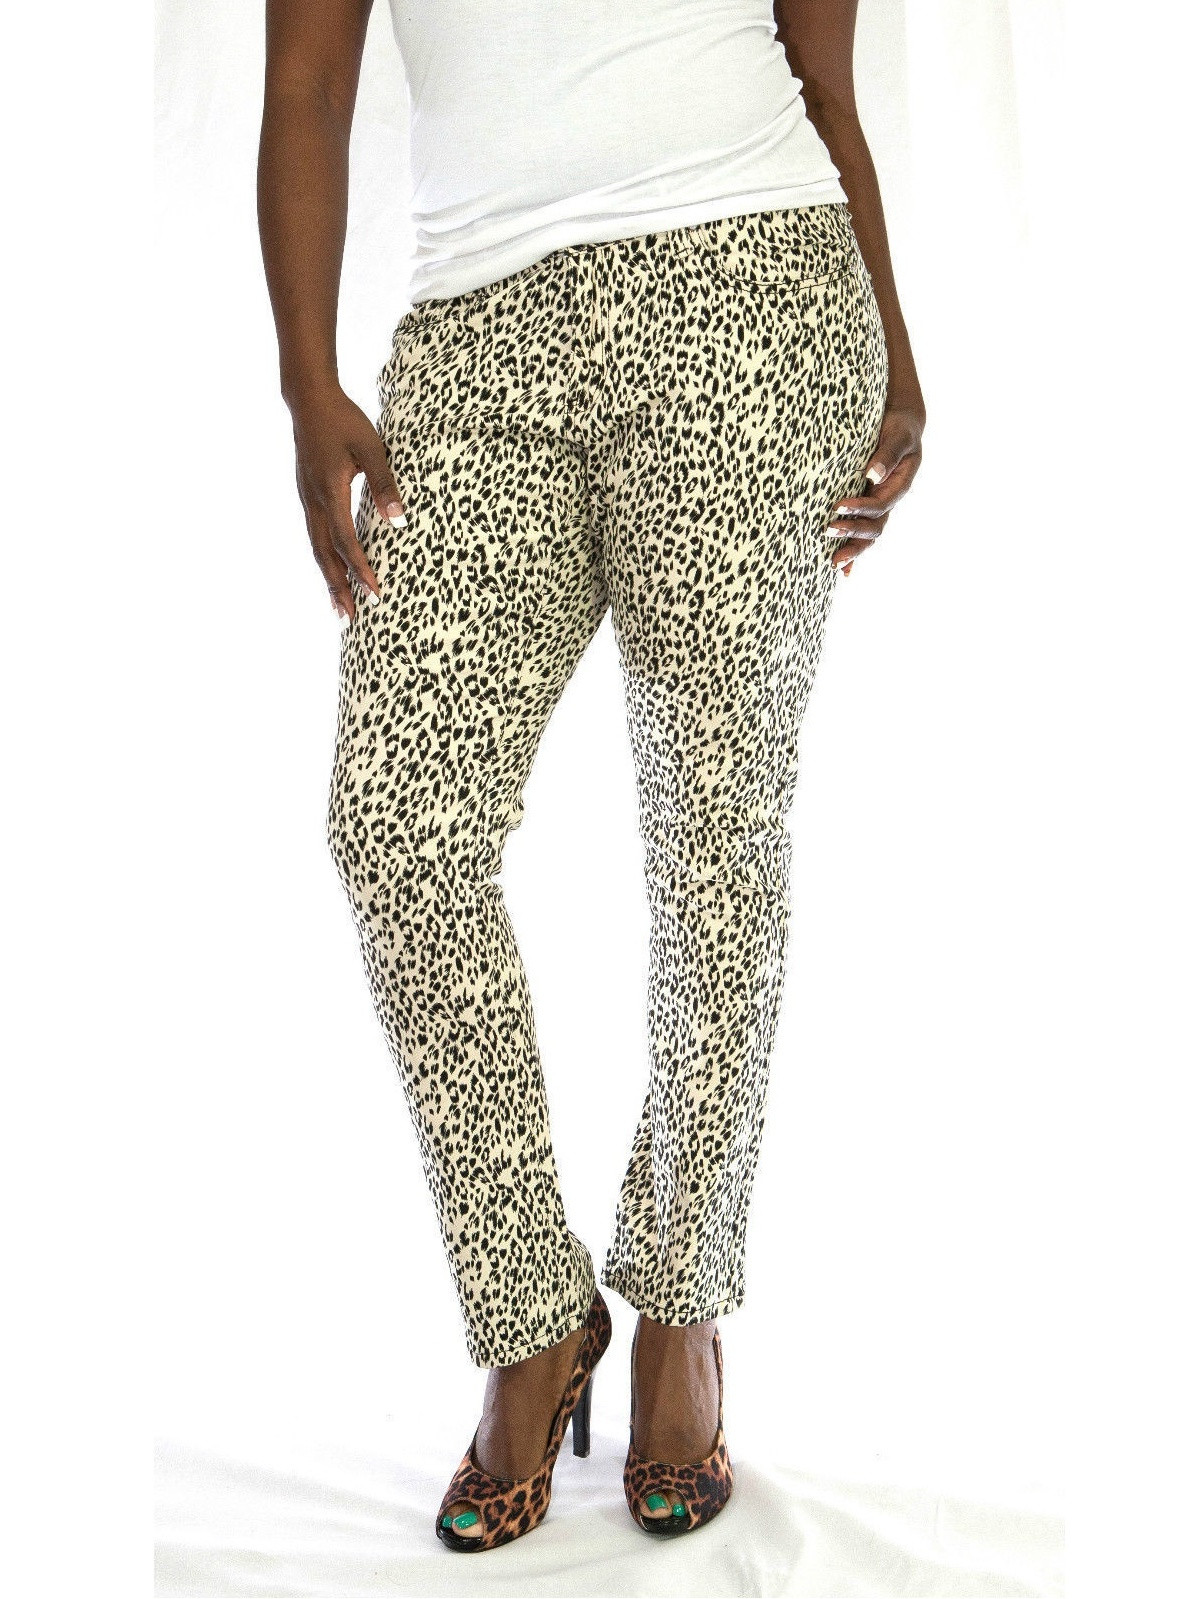 7d412ea0c36 JEANS COLONY - LP Womens Plus Size Leopard Cheetah Print Stretch Twill  Denim Jeans Skinny Pants - Walmart.com